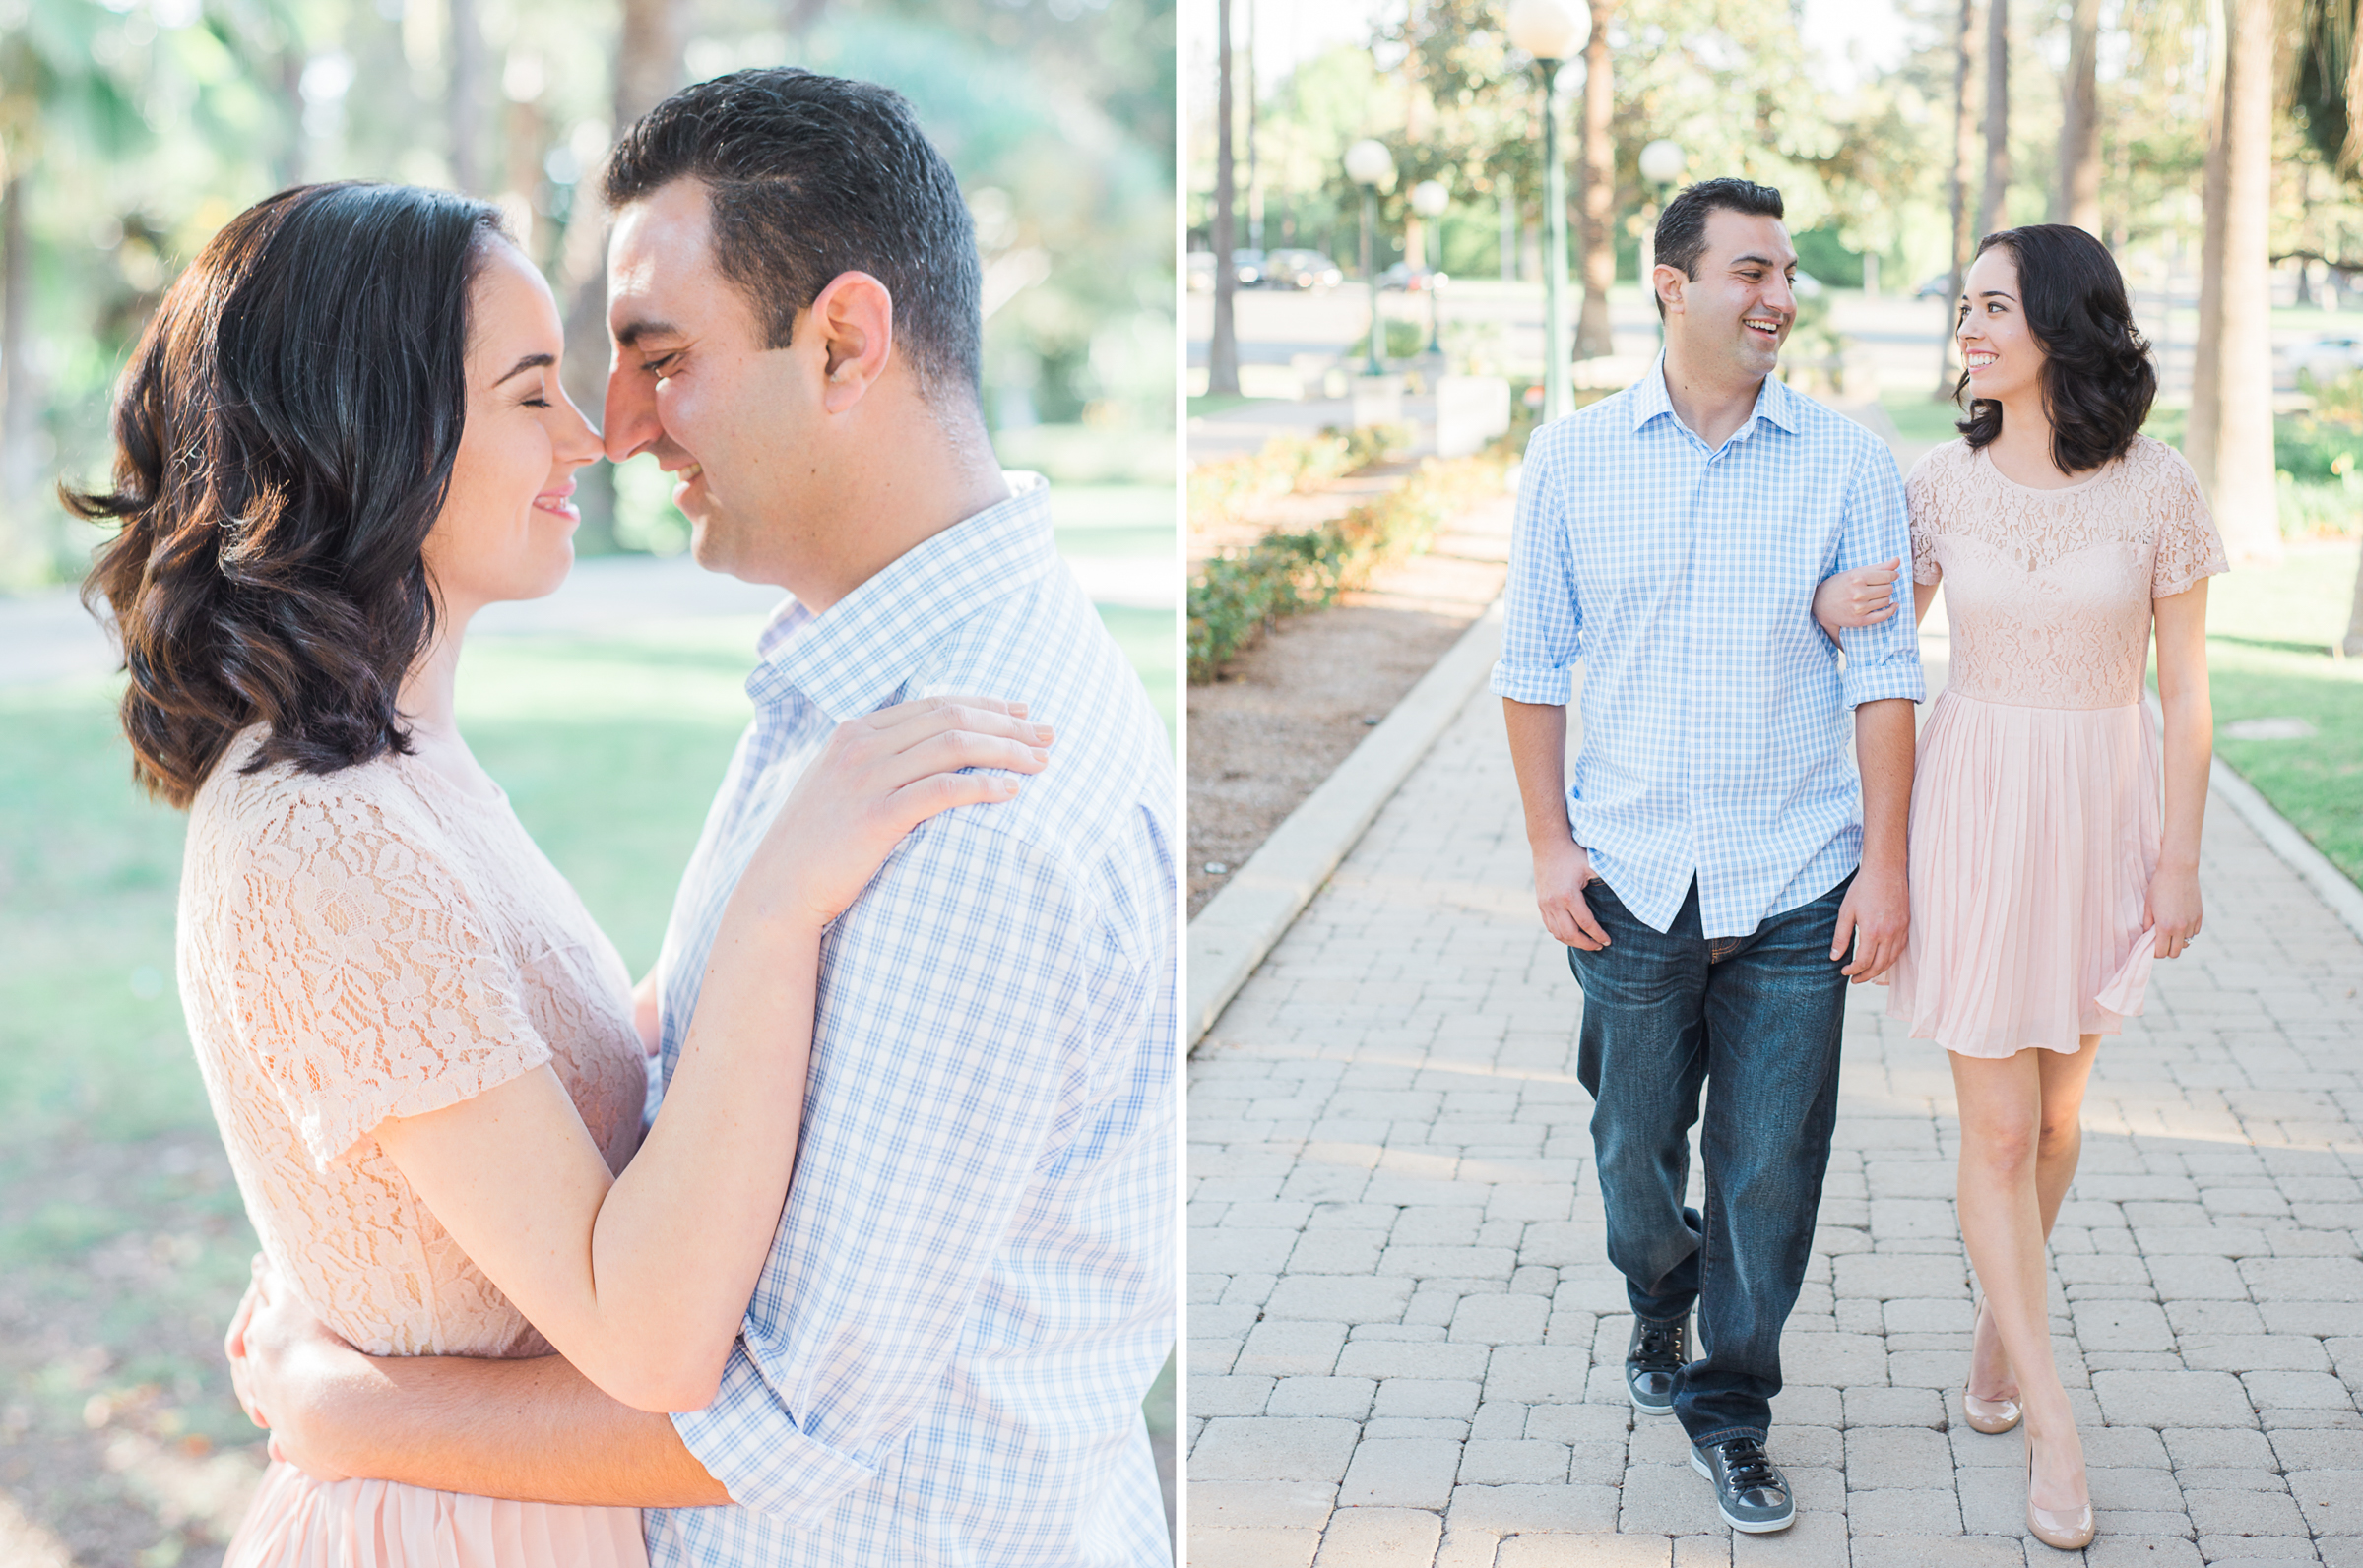 los_angeles_engagement_session_photography_Will_Rogers_Memorial_Park-3.jpg